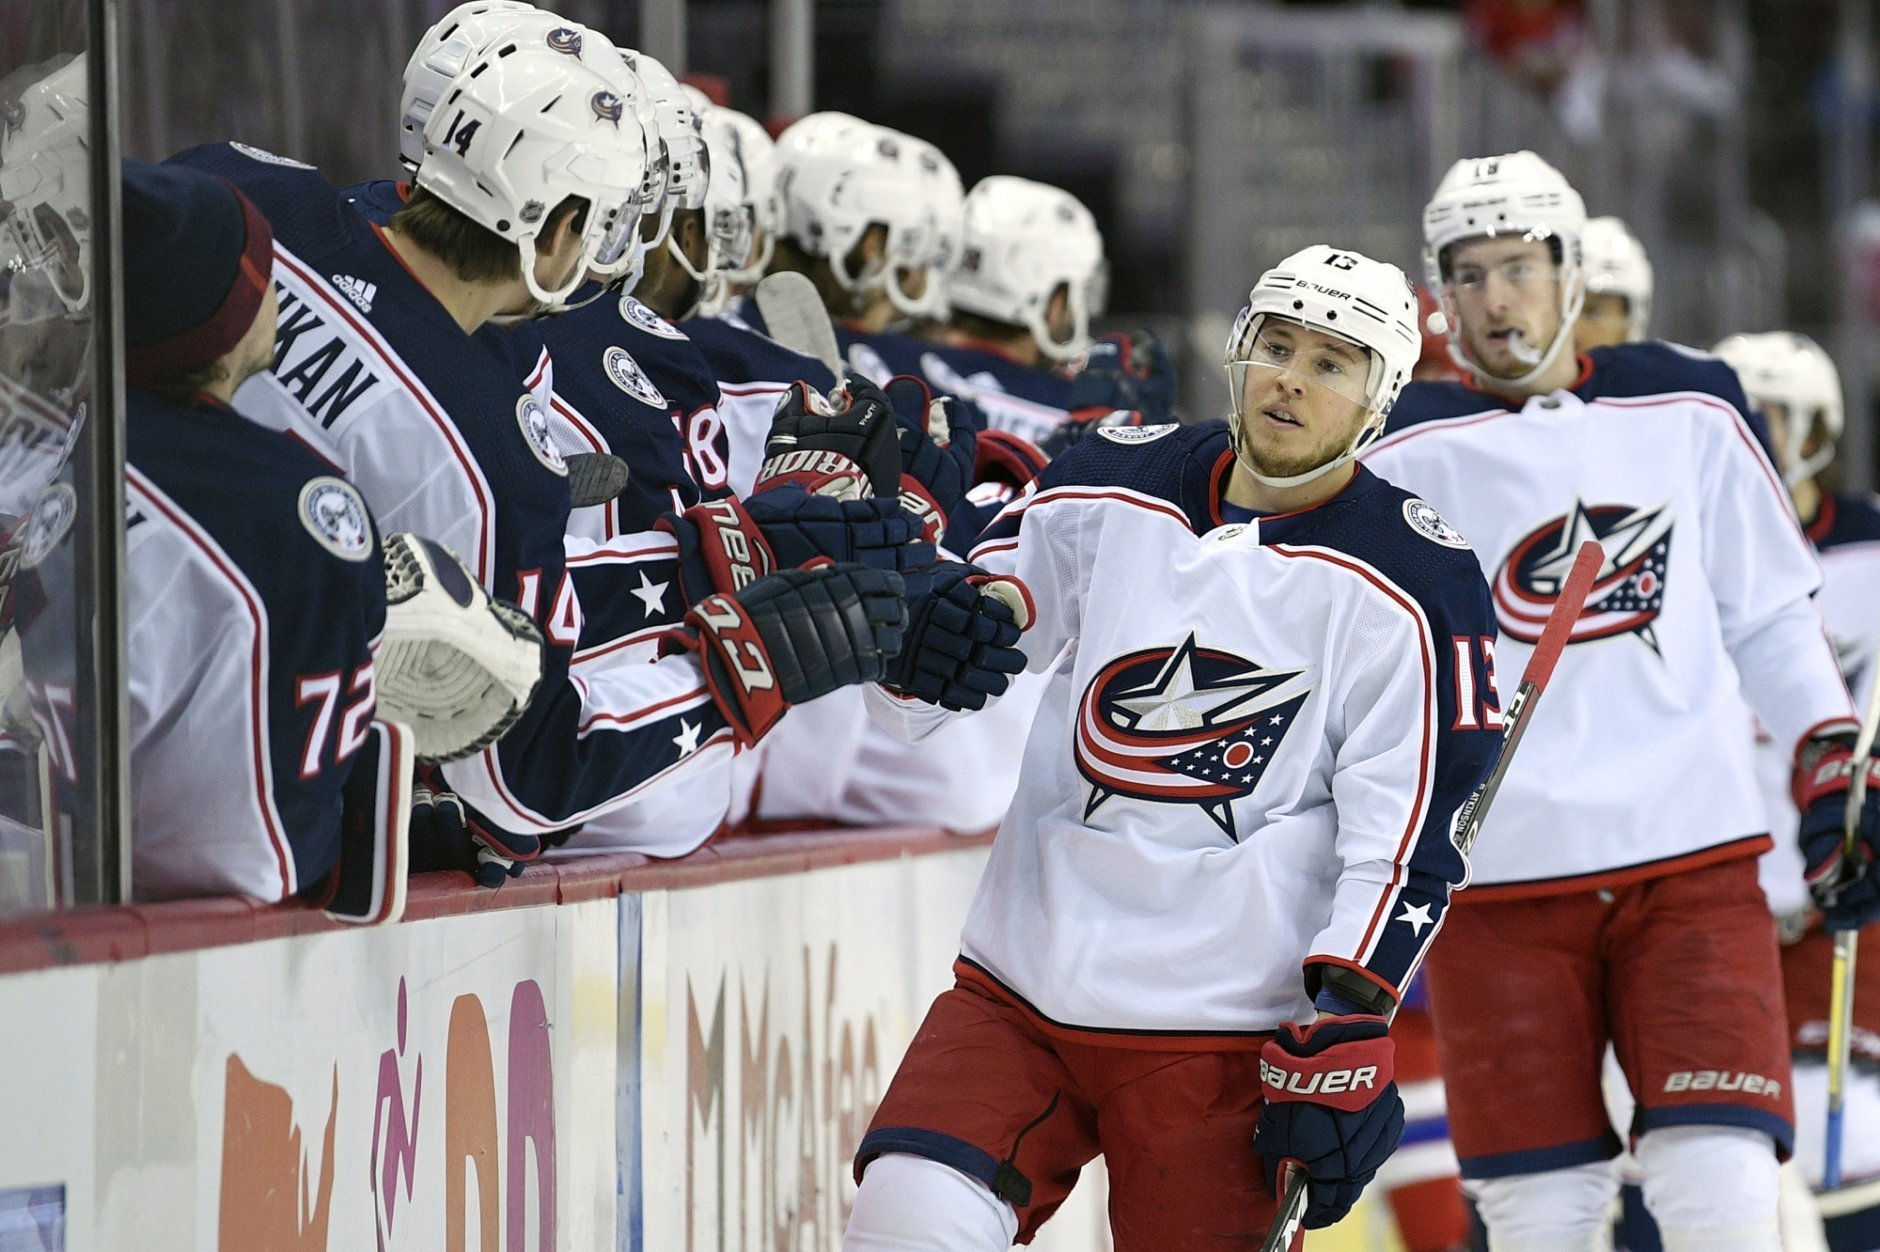 Columbus Blue Jackets right wing Cam Atkinson (13) celebrates his goal during the first period of an NHL hockey game against the Washington Capitals, Saturday, Jan. 12, 2019, in Washington. (AP Photo/Nick Wass)